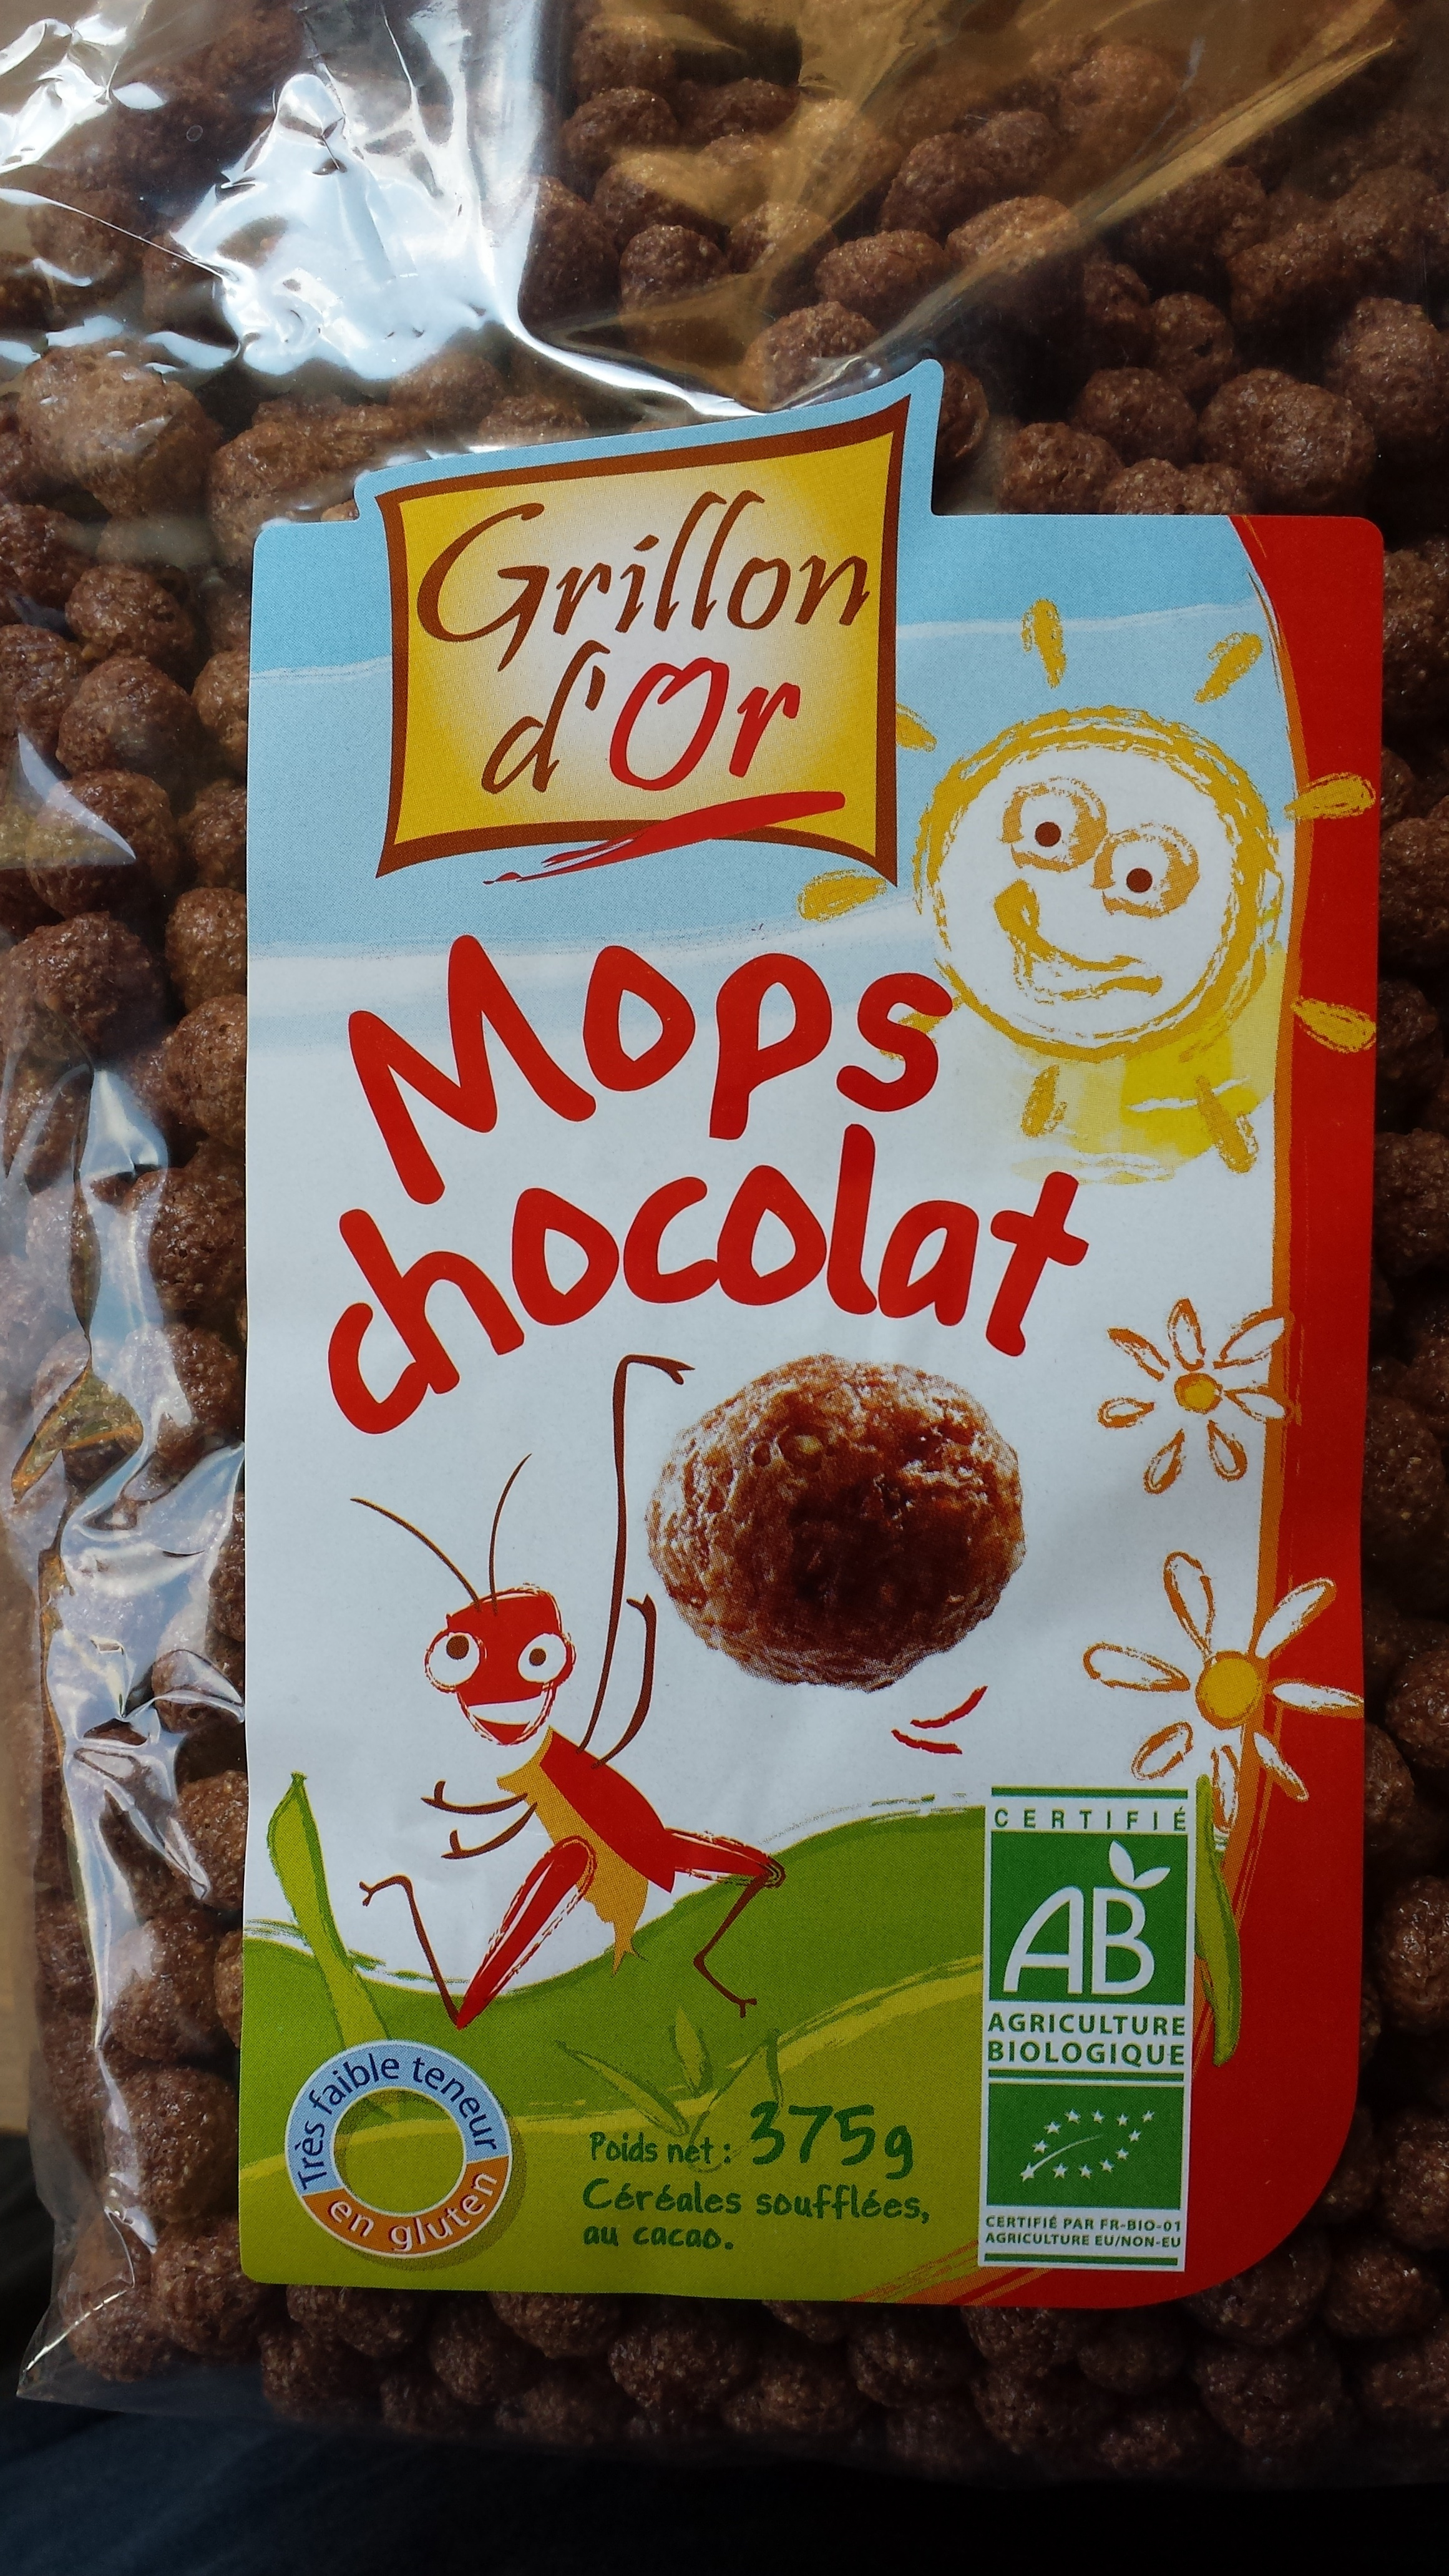 Mops Chocolat - Product